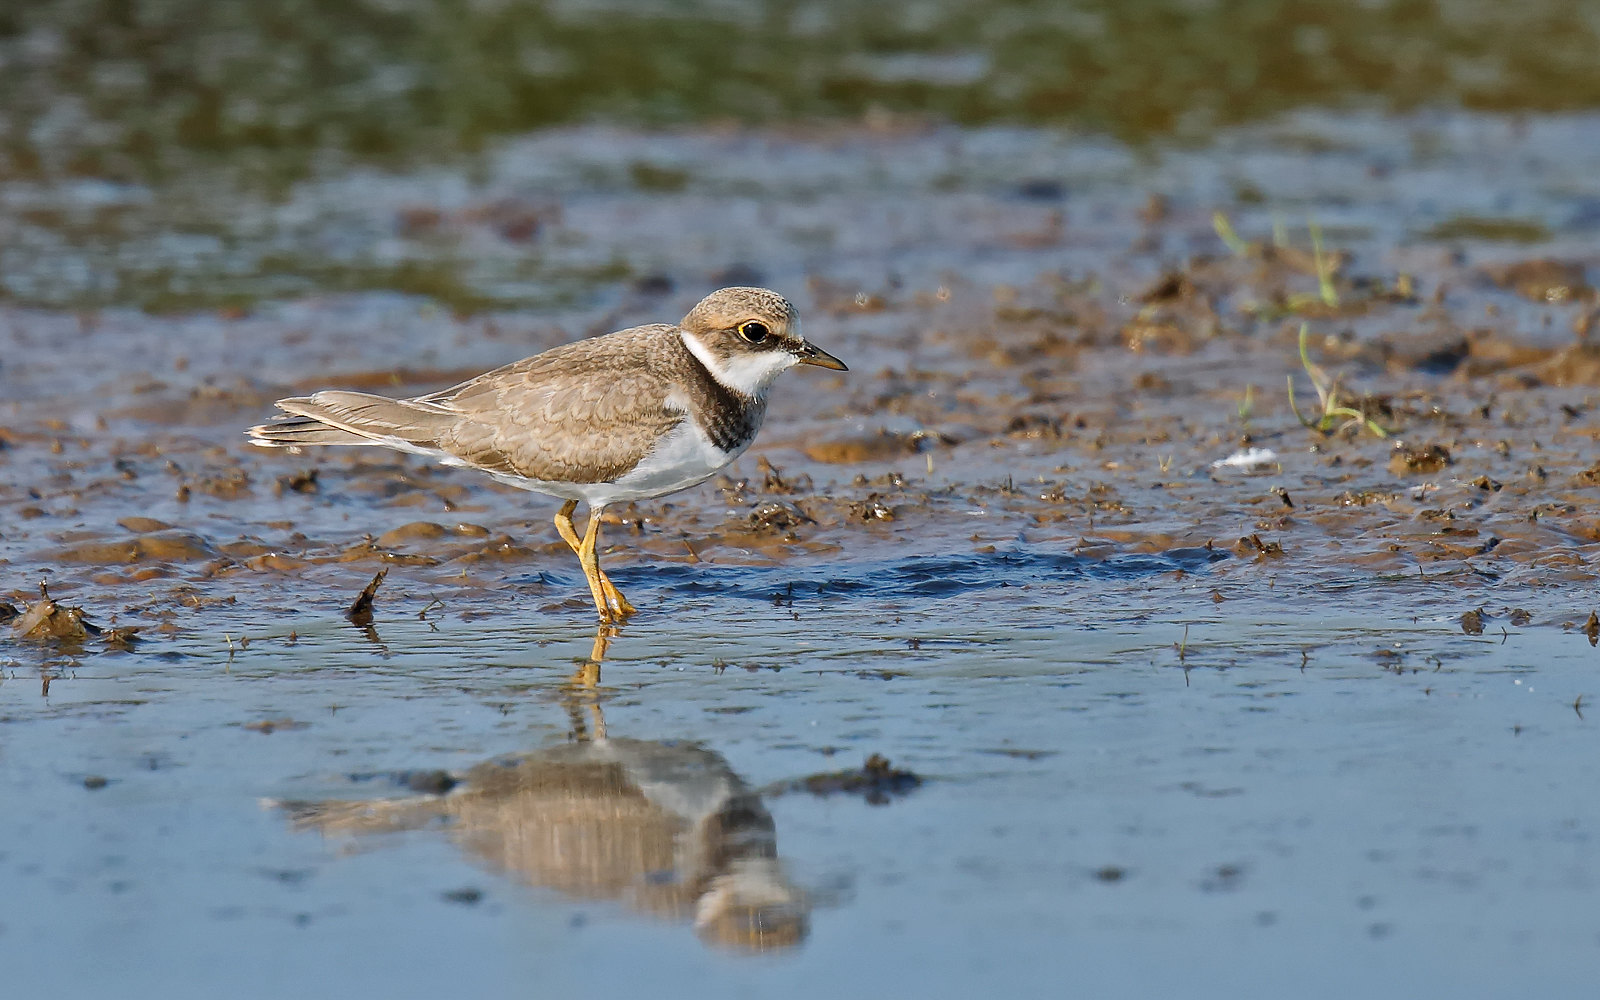 Little Ringed Plover - Juvenile